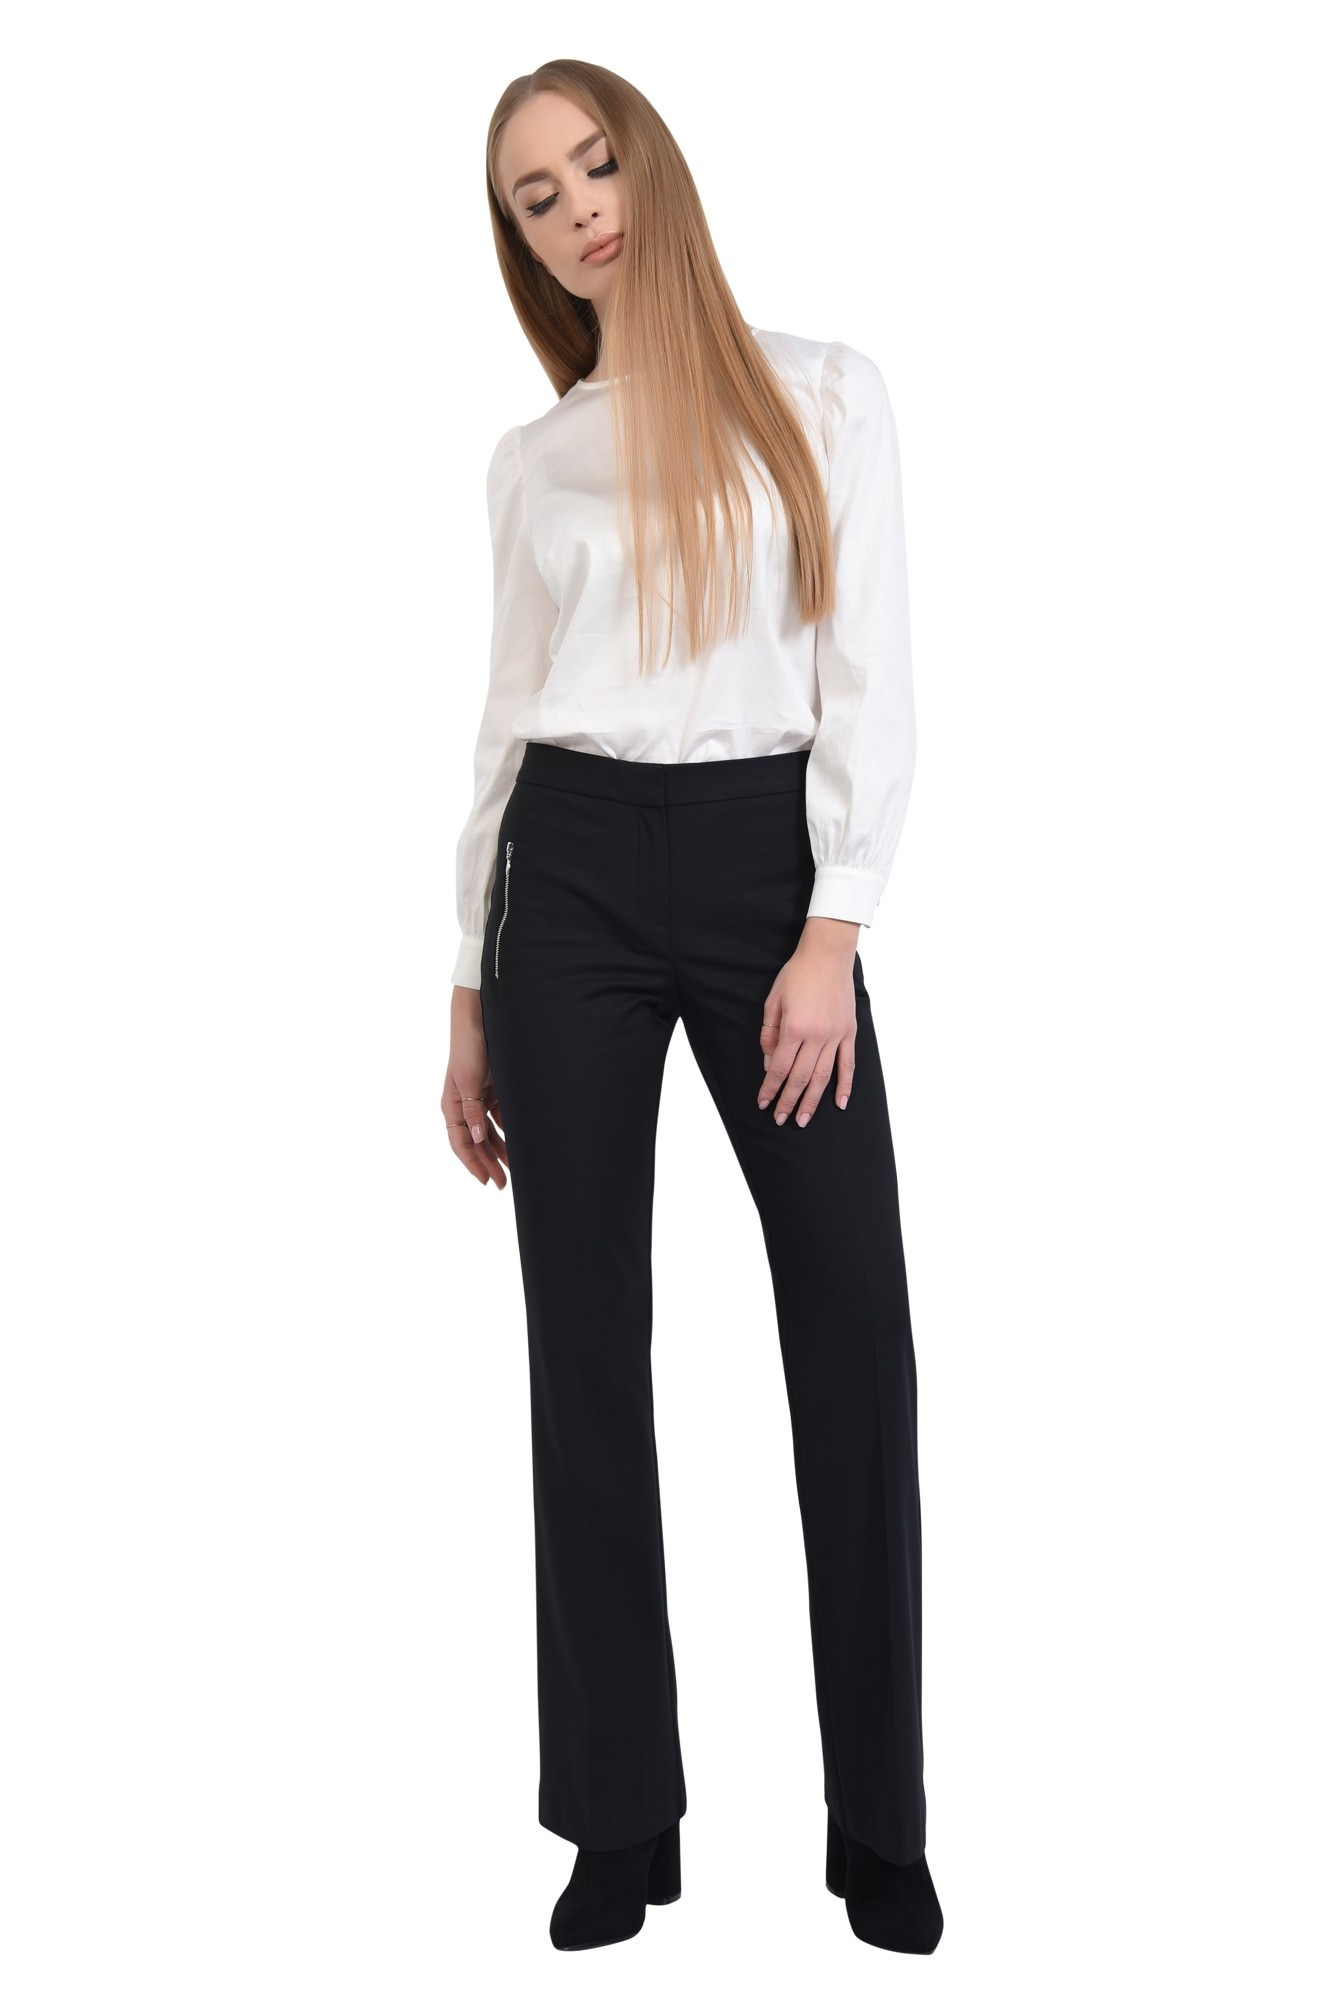 0 - PANTALON OFFICE PT 181-NEGRU